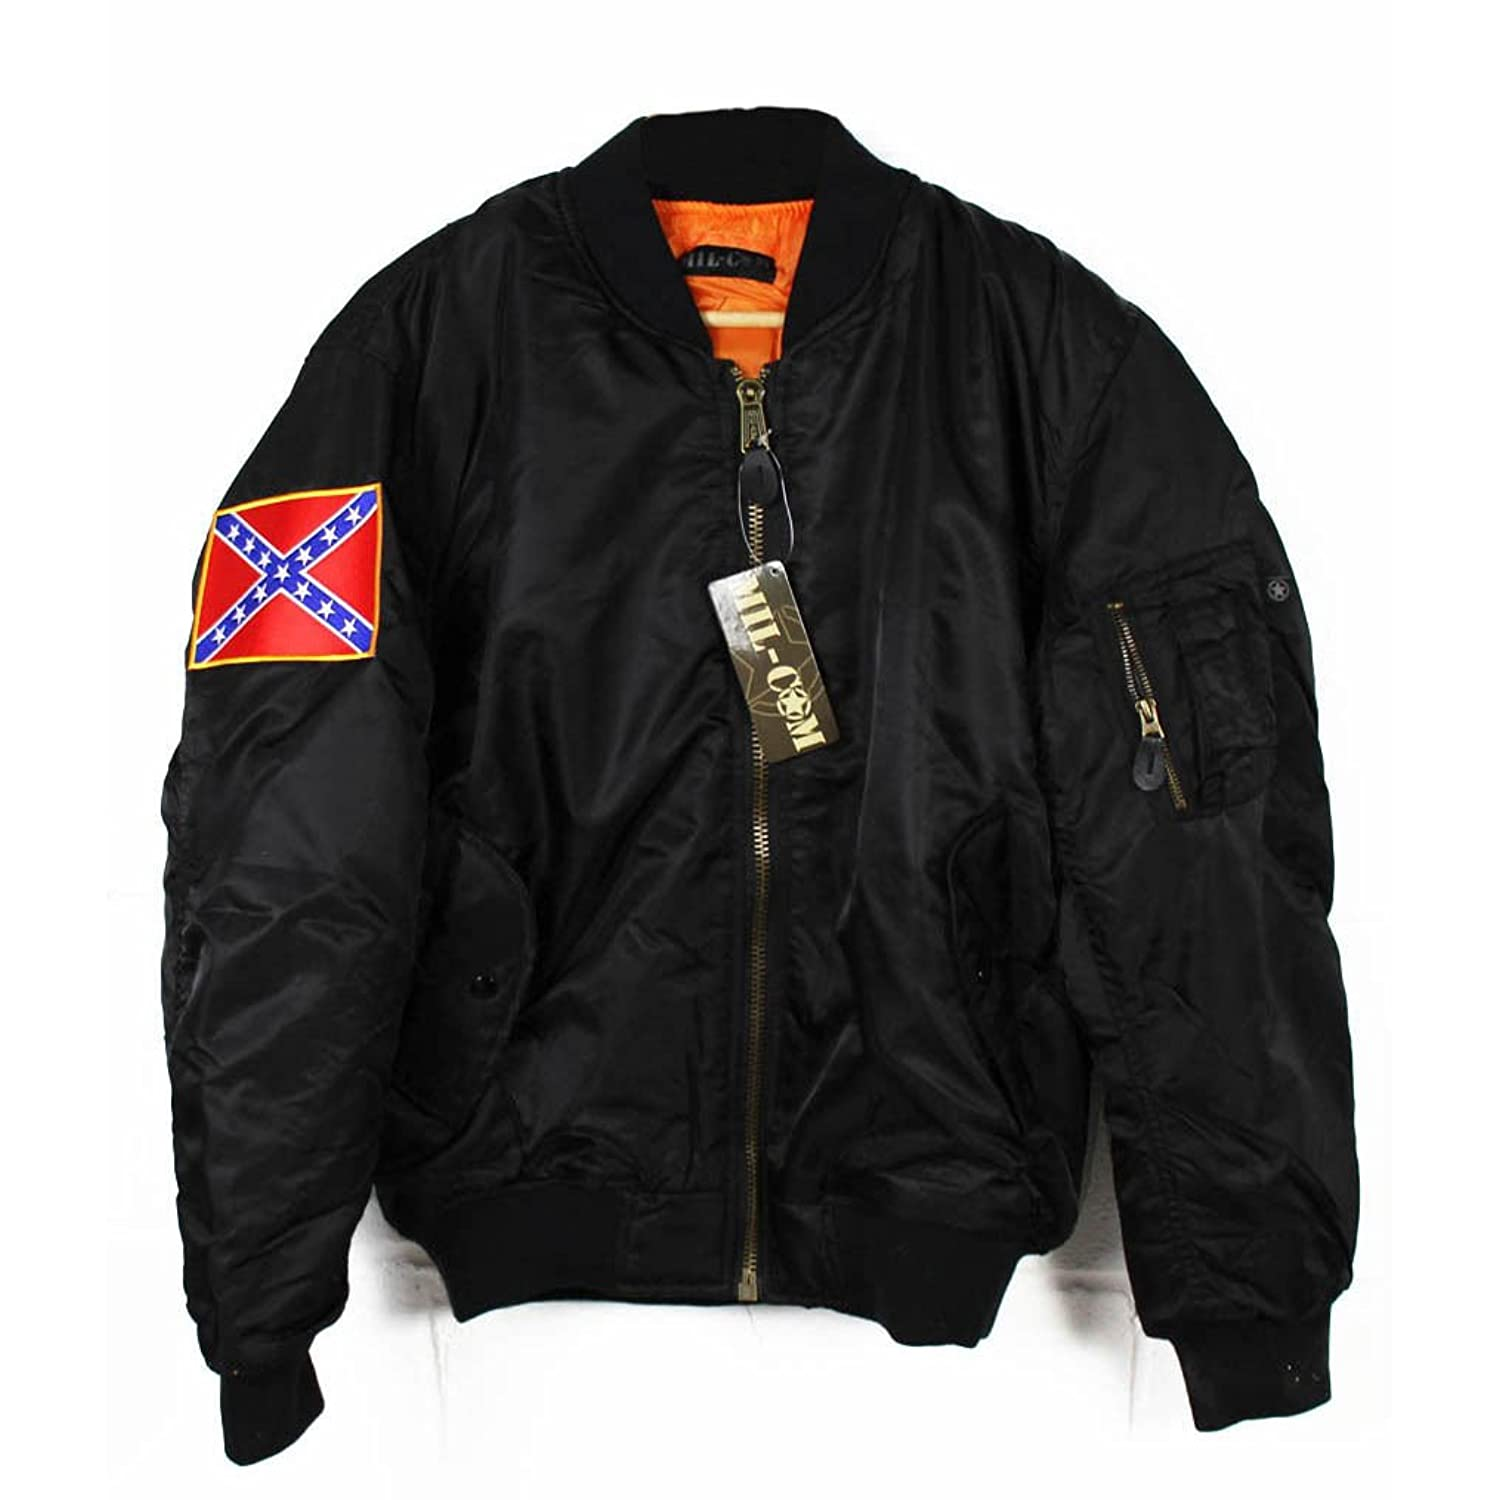 Mens Yeezus MA-1 Bomber Jacket: Amazon.co.uk: Clothing